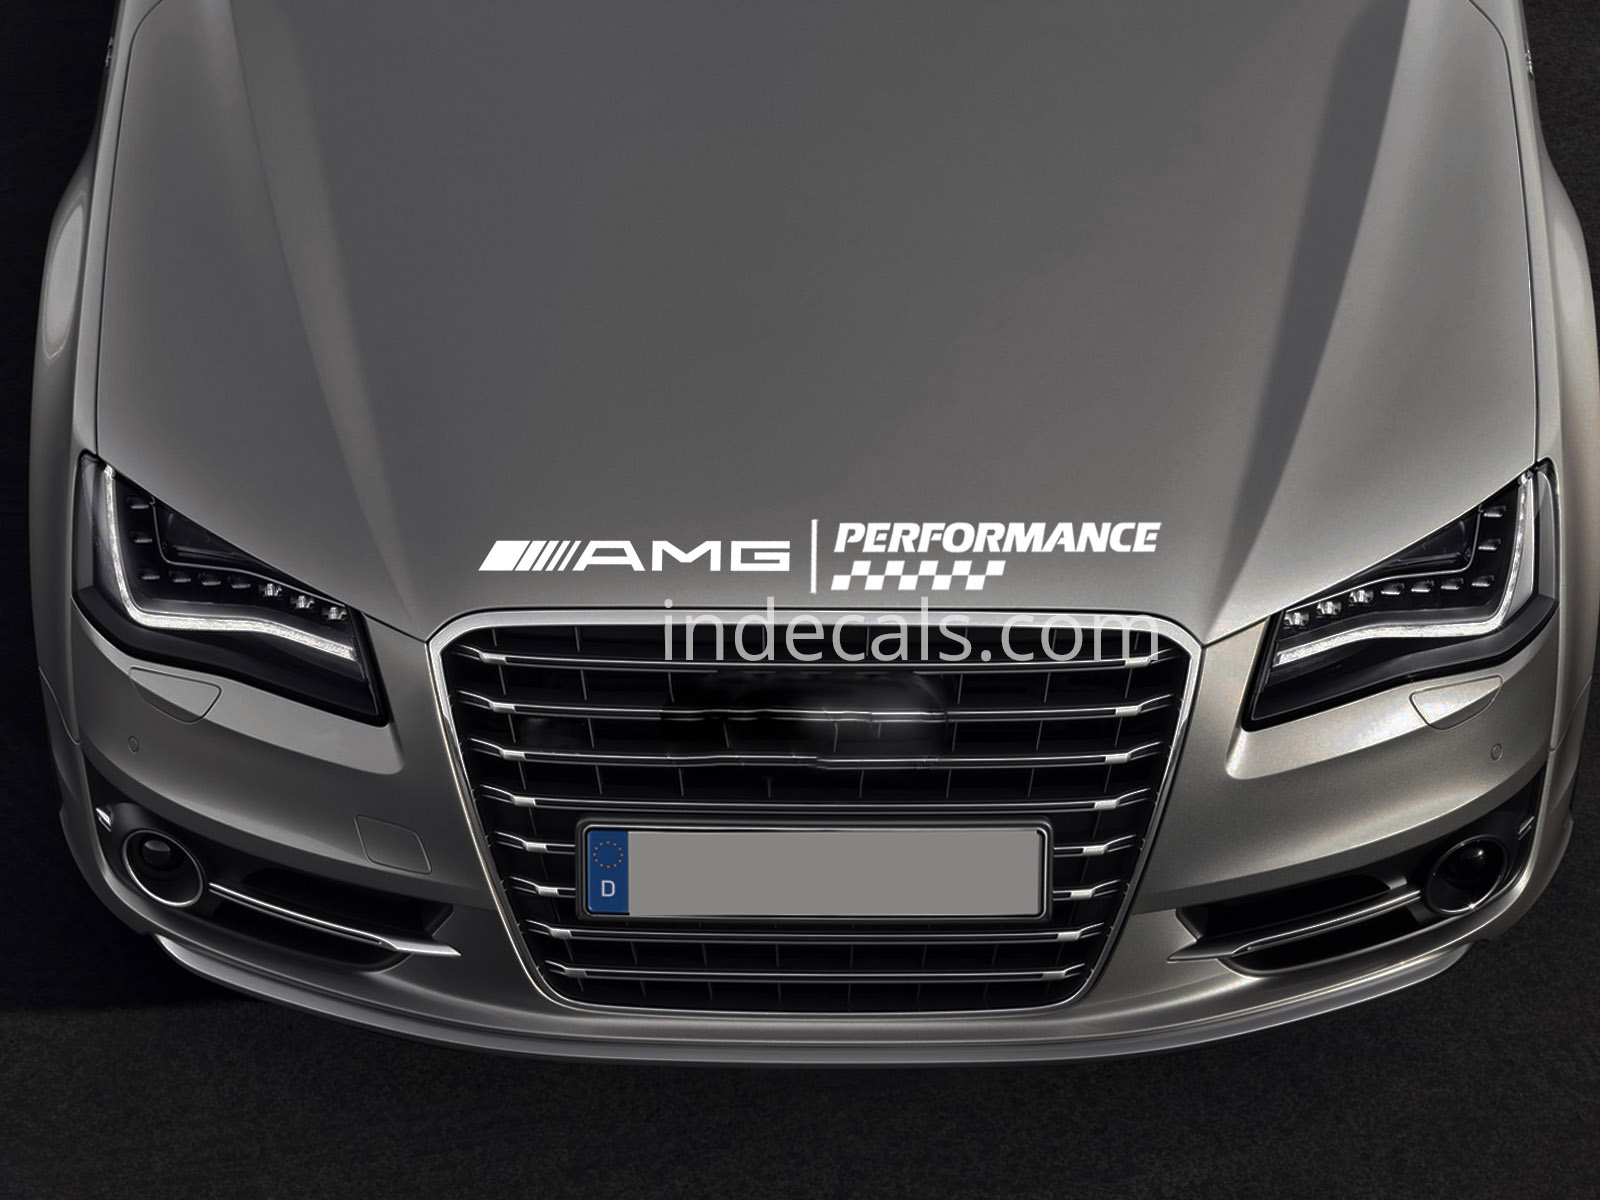 1 x AMG Peformance Sticker for Bonnet - White